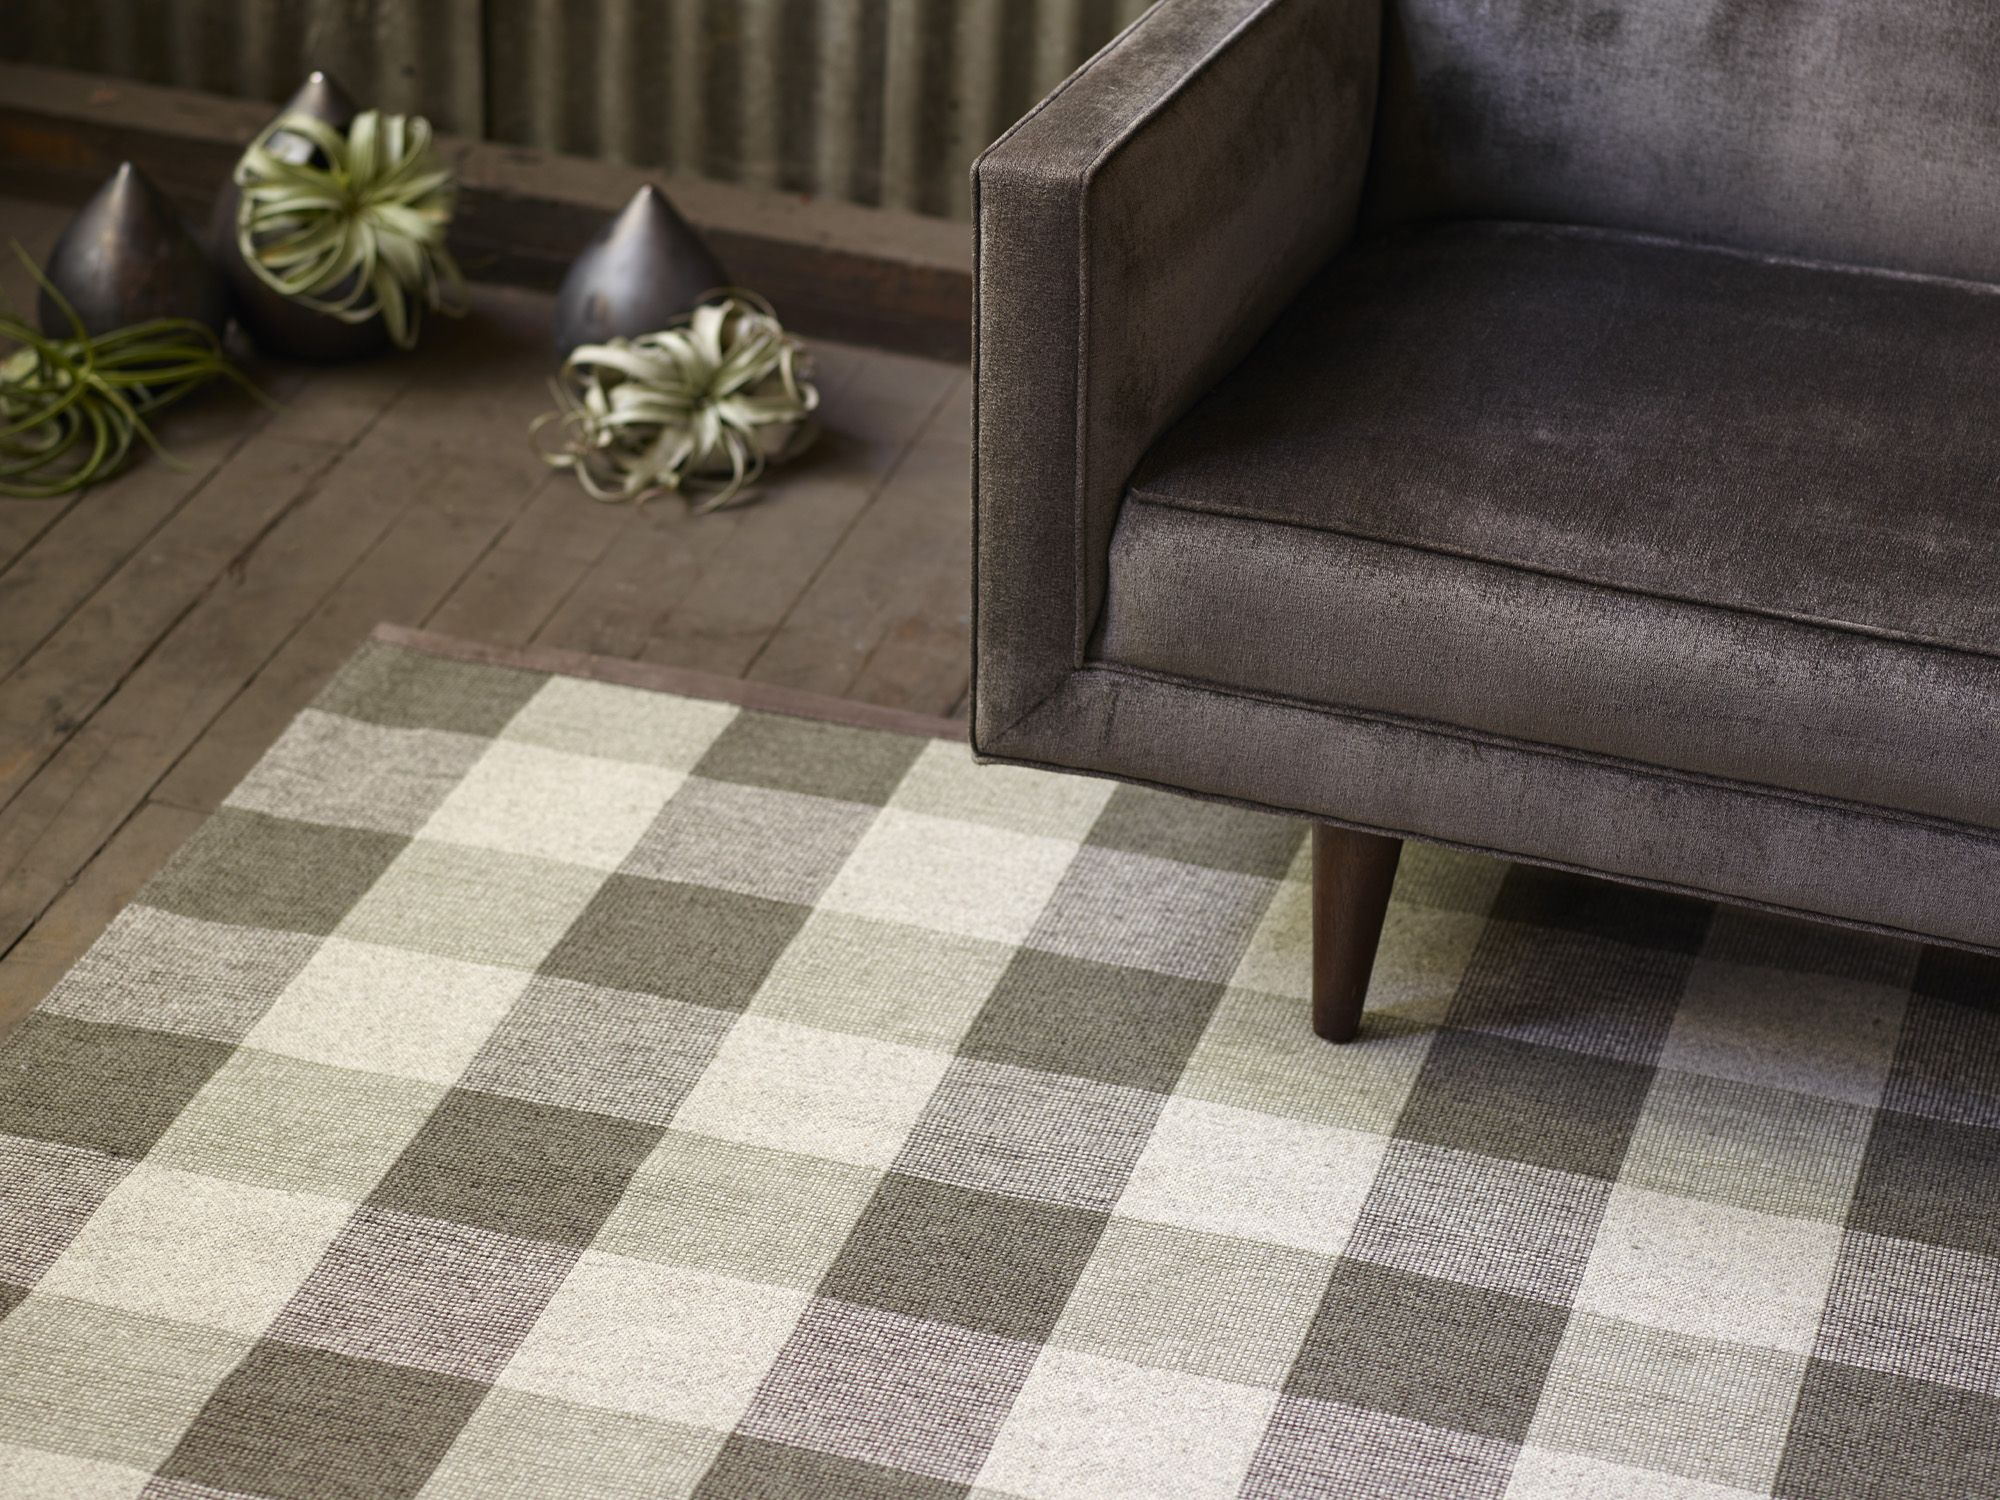 Foster in green olive from the tailormade collection of flatweave wool rugs made to measure and woven to order in fall river usa